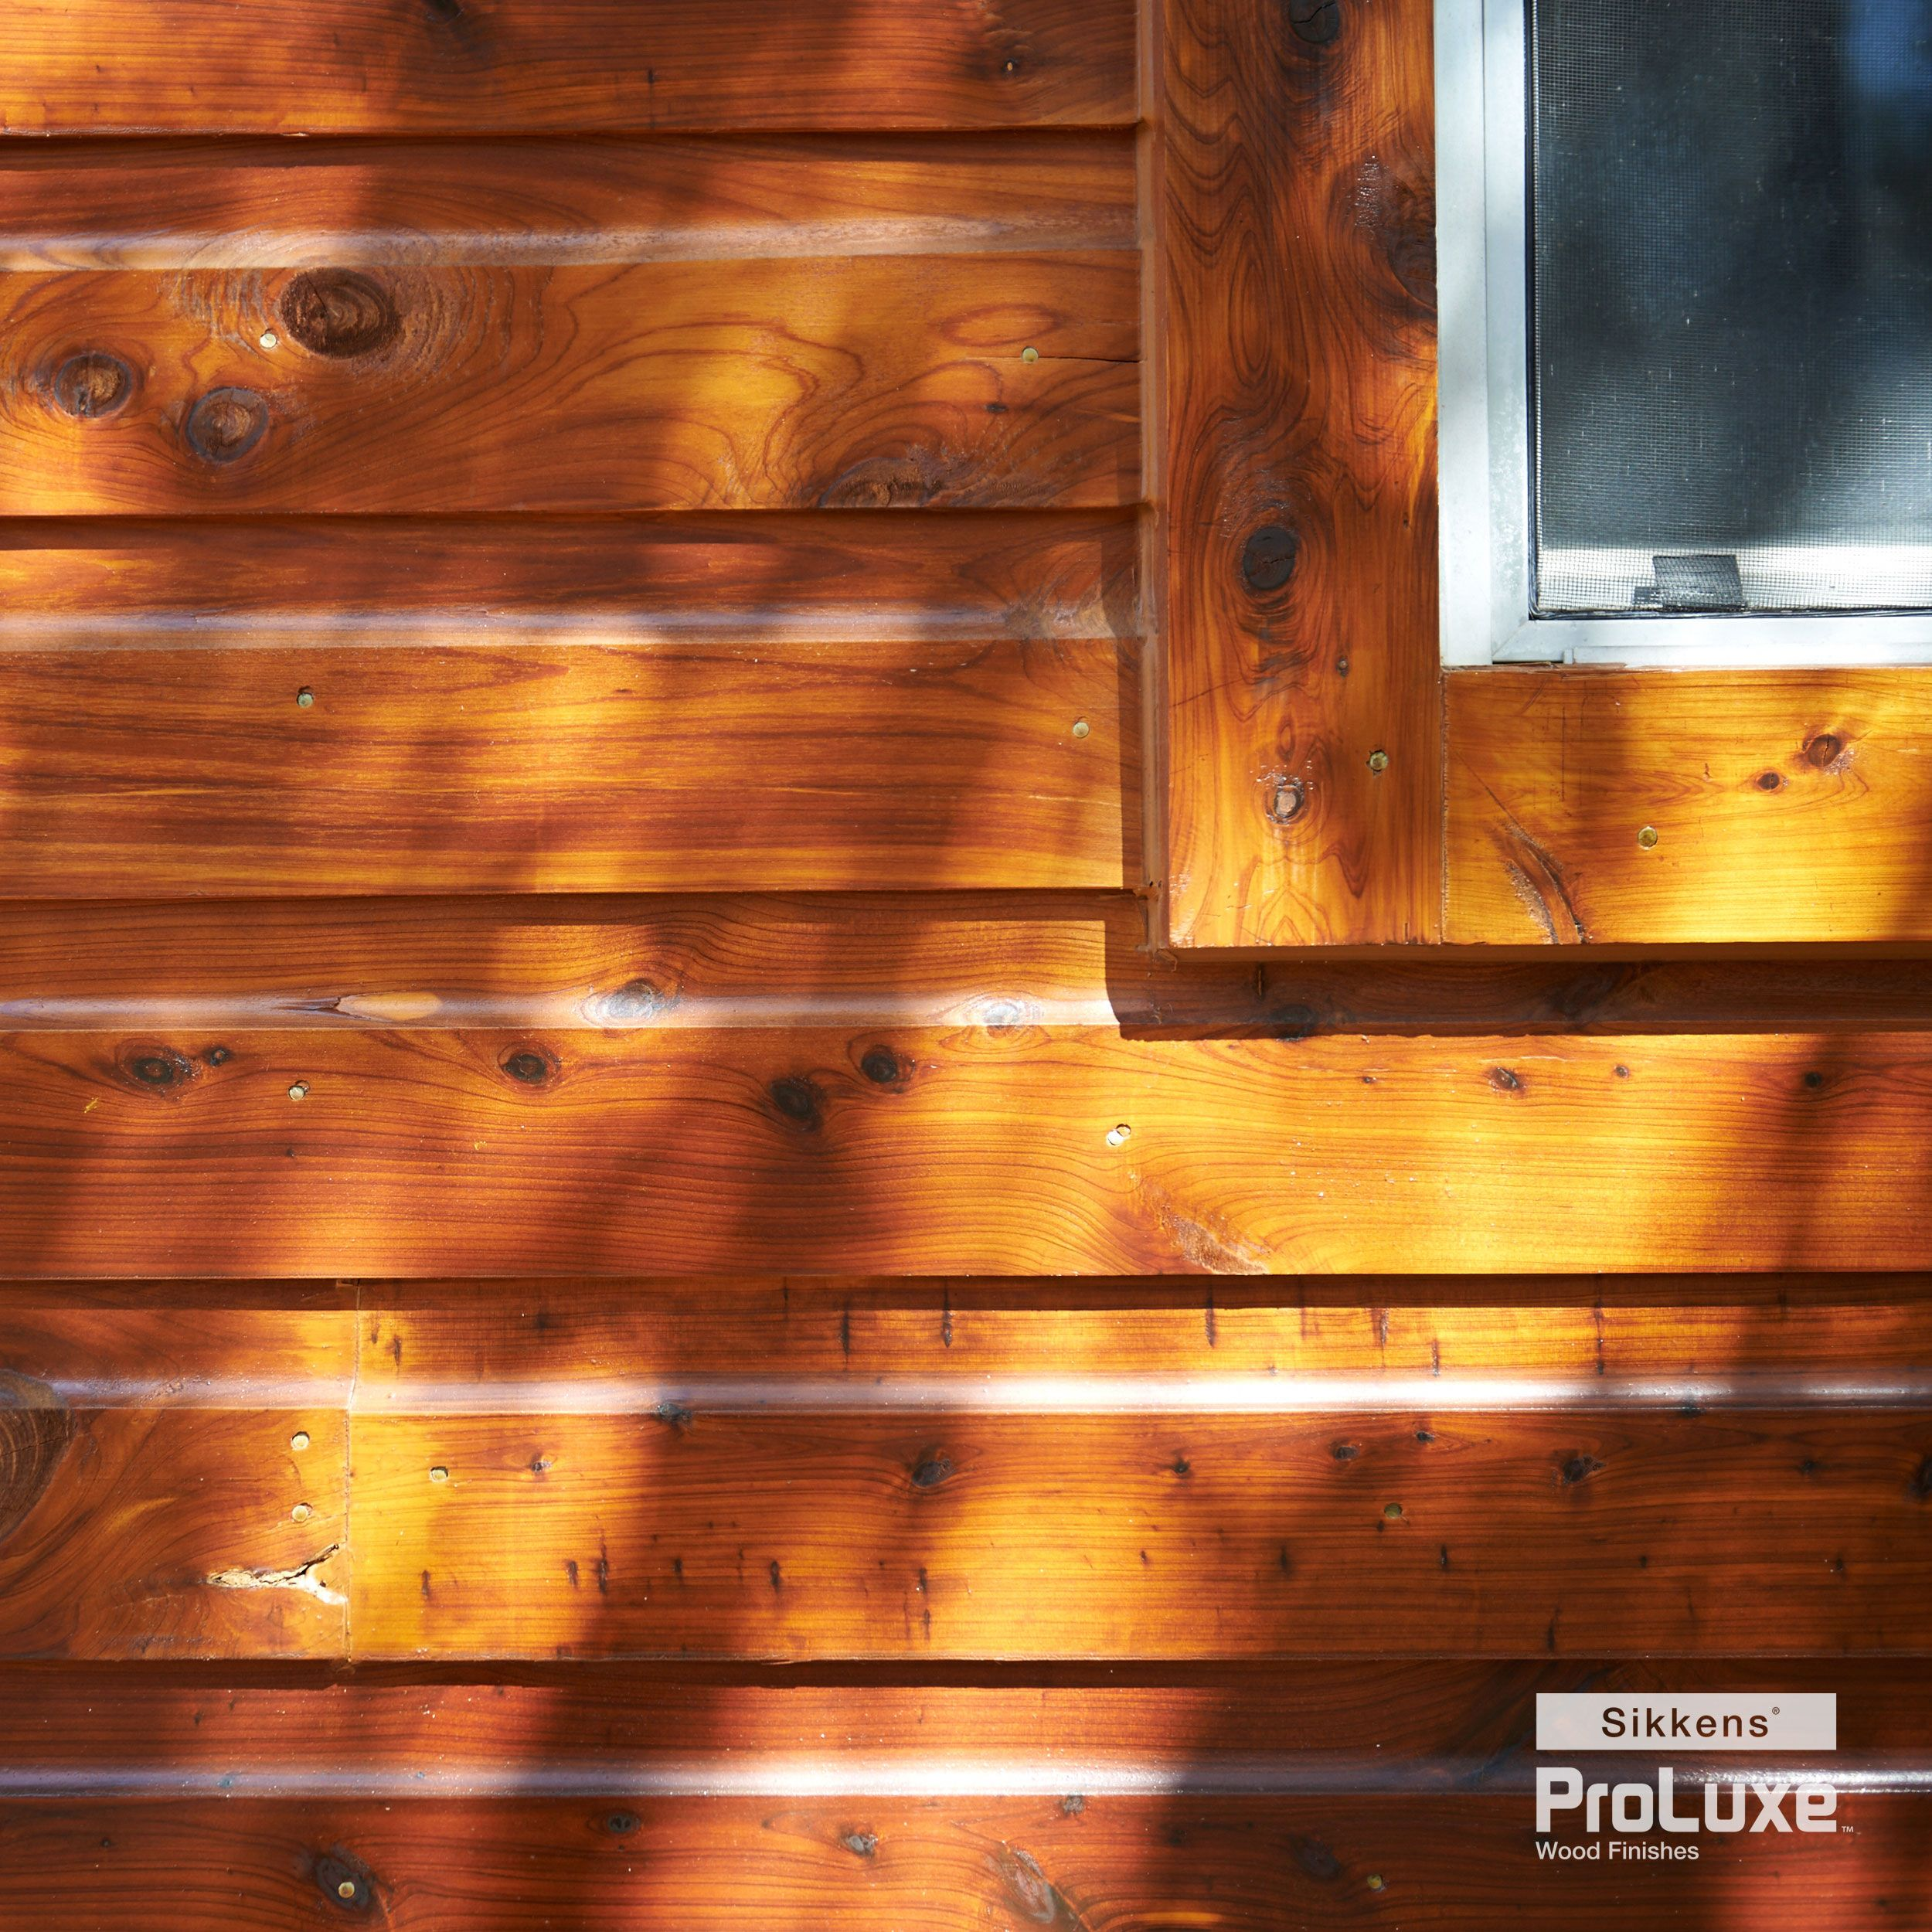 Real wood siding featuring sikkens proluxe cetol srd in for How to stain log cabin